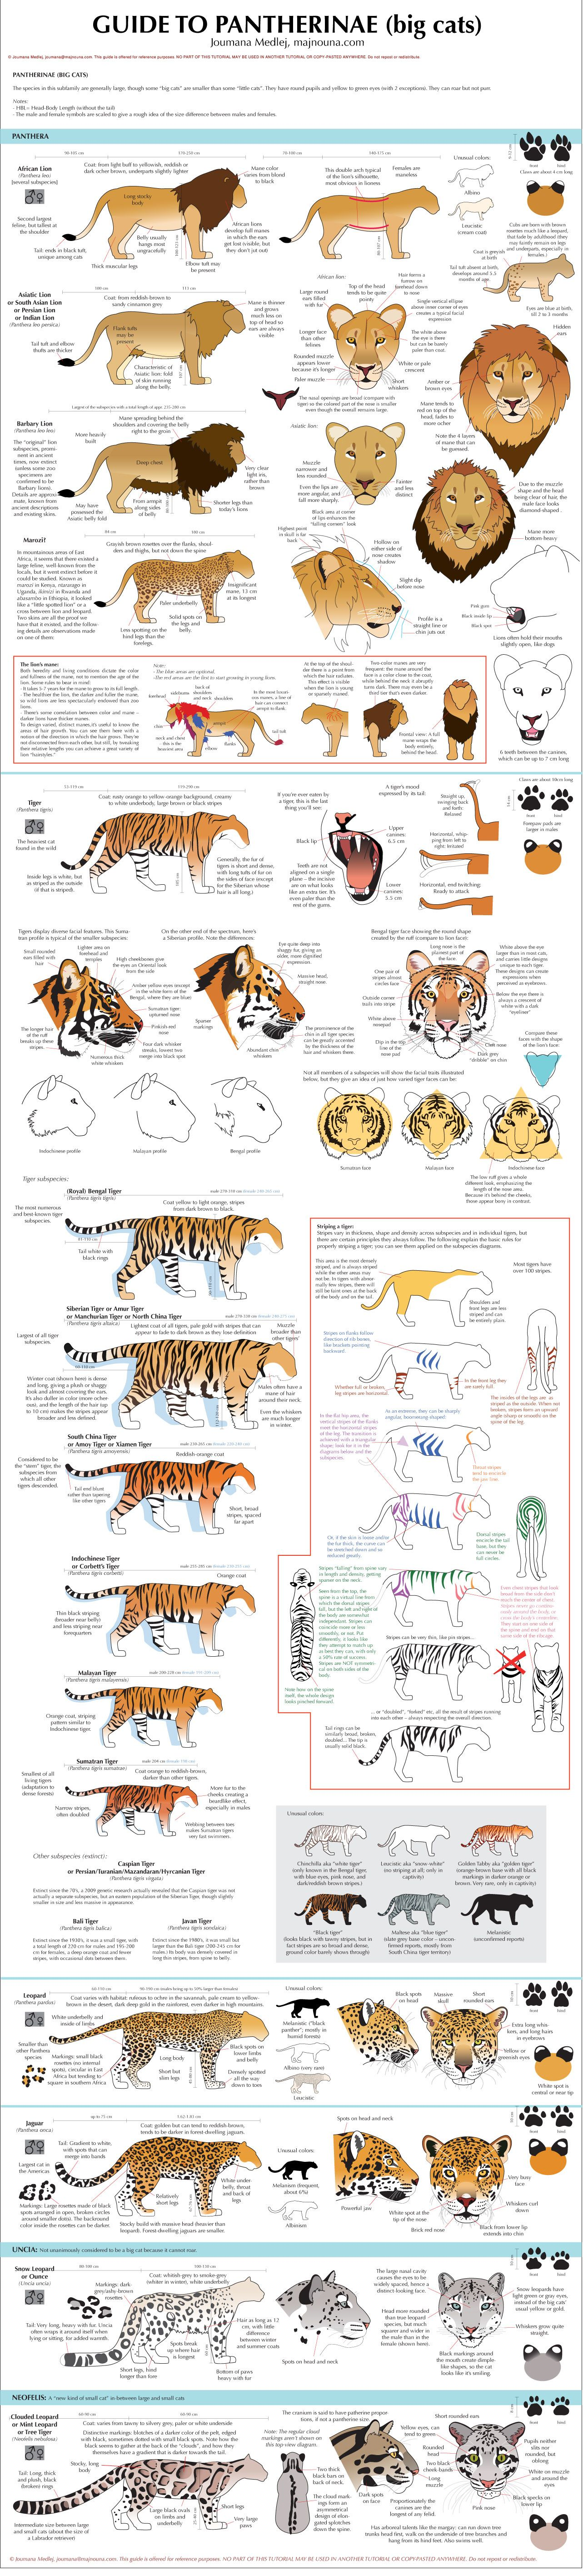 Character Design Handbook : Guide to big cats by `majnouna on deviantart